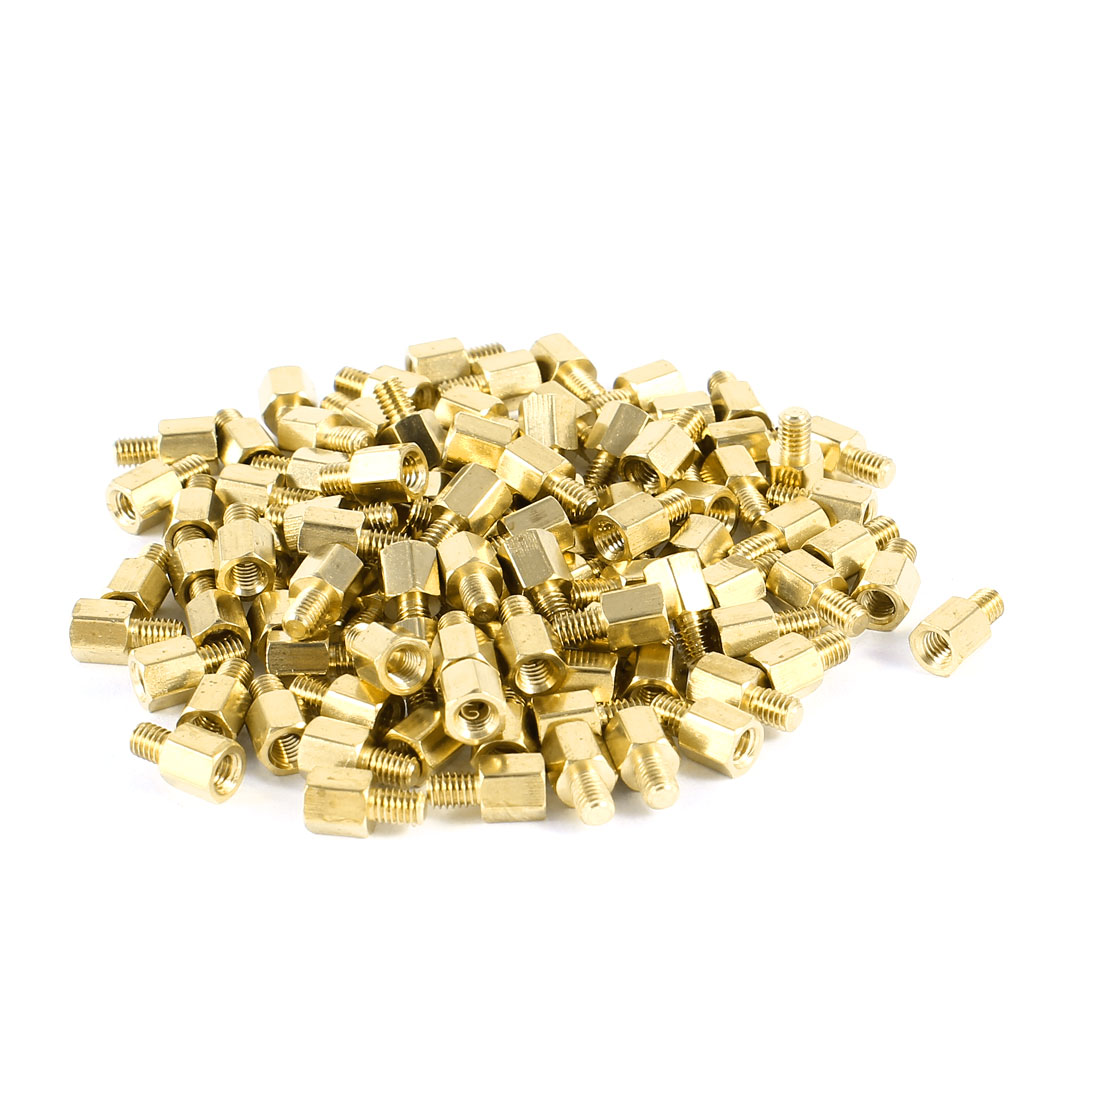 100 Pcs PC Case PCB Motherboard Brass Standoff Hexagonal Spacer M3 5+4mm